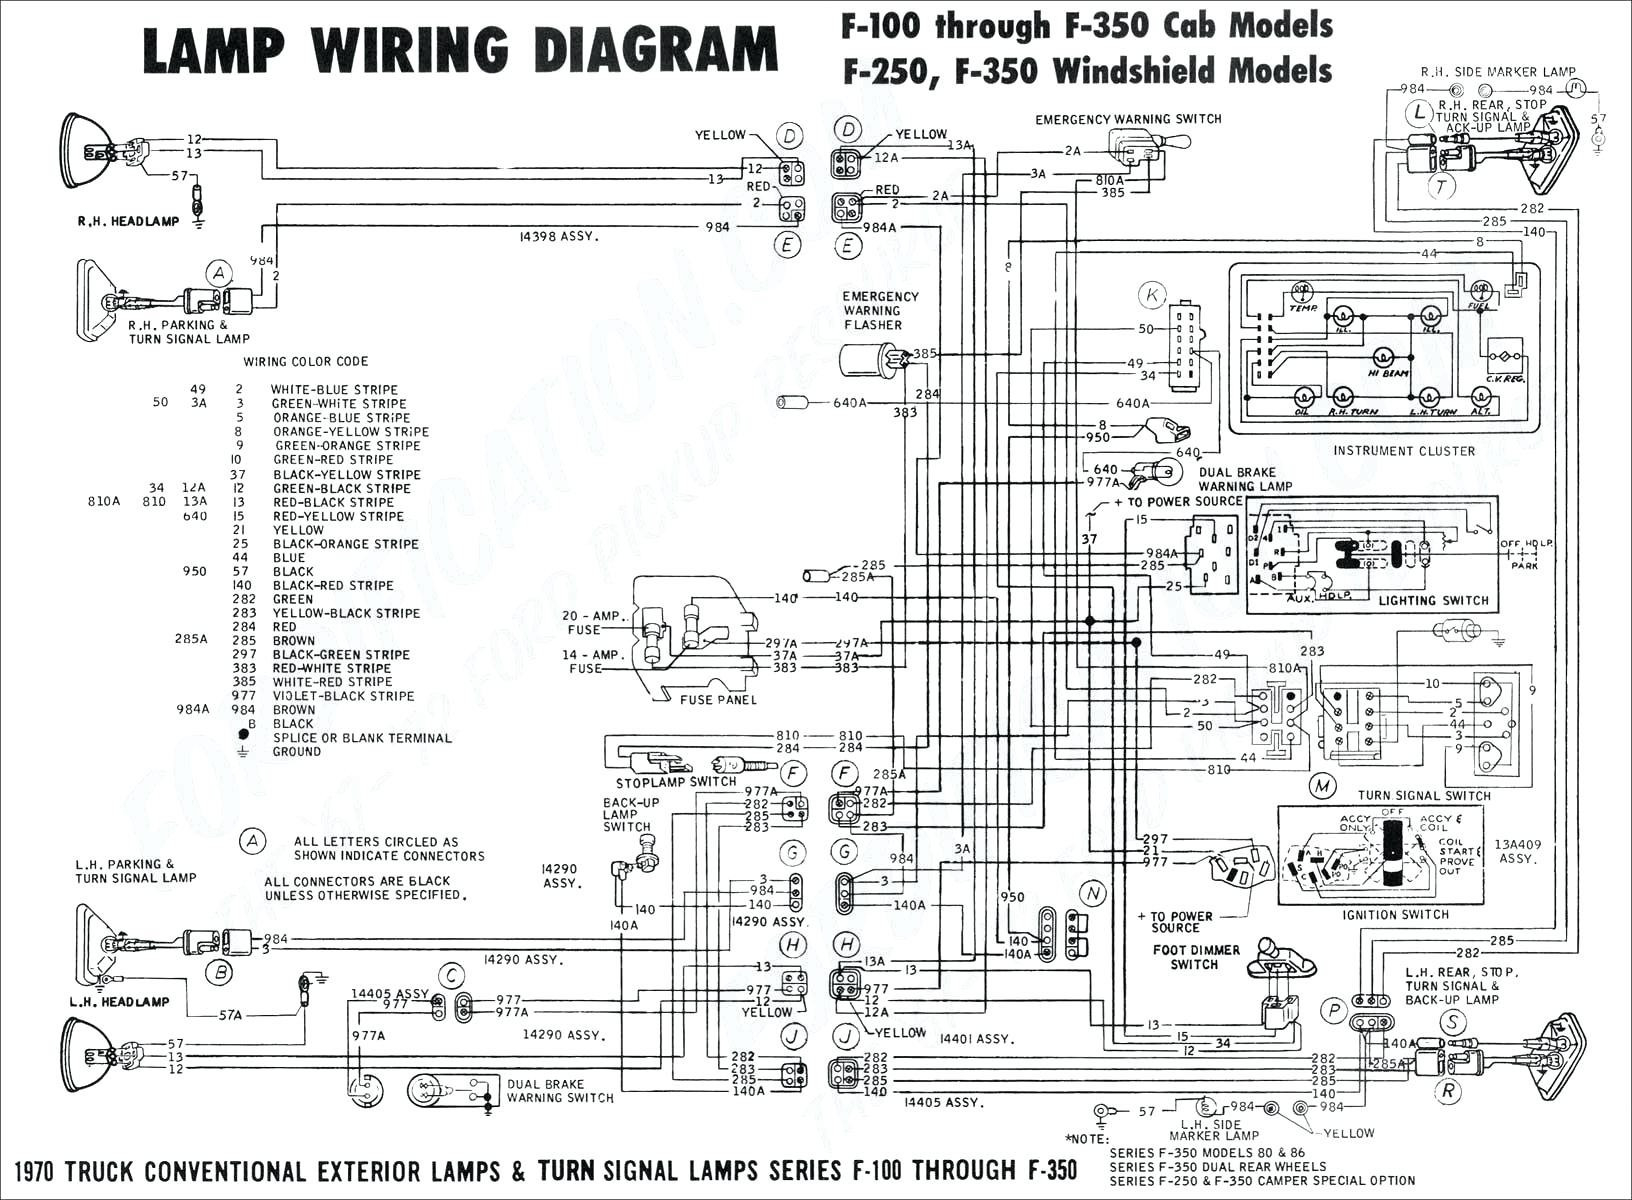 F550 Tail Light Wiring Diagram | Wiring Diagram F Led Tail Light Wire Harness on